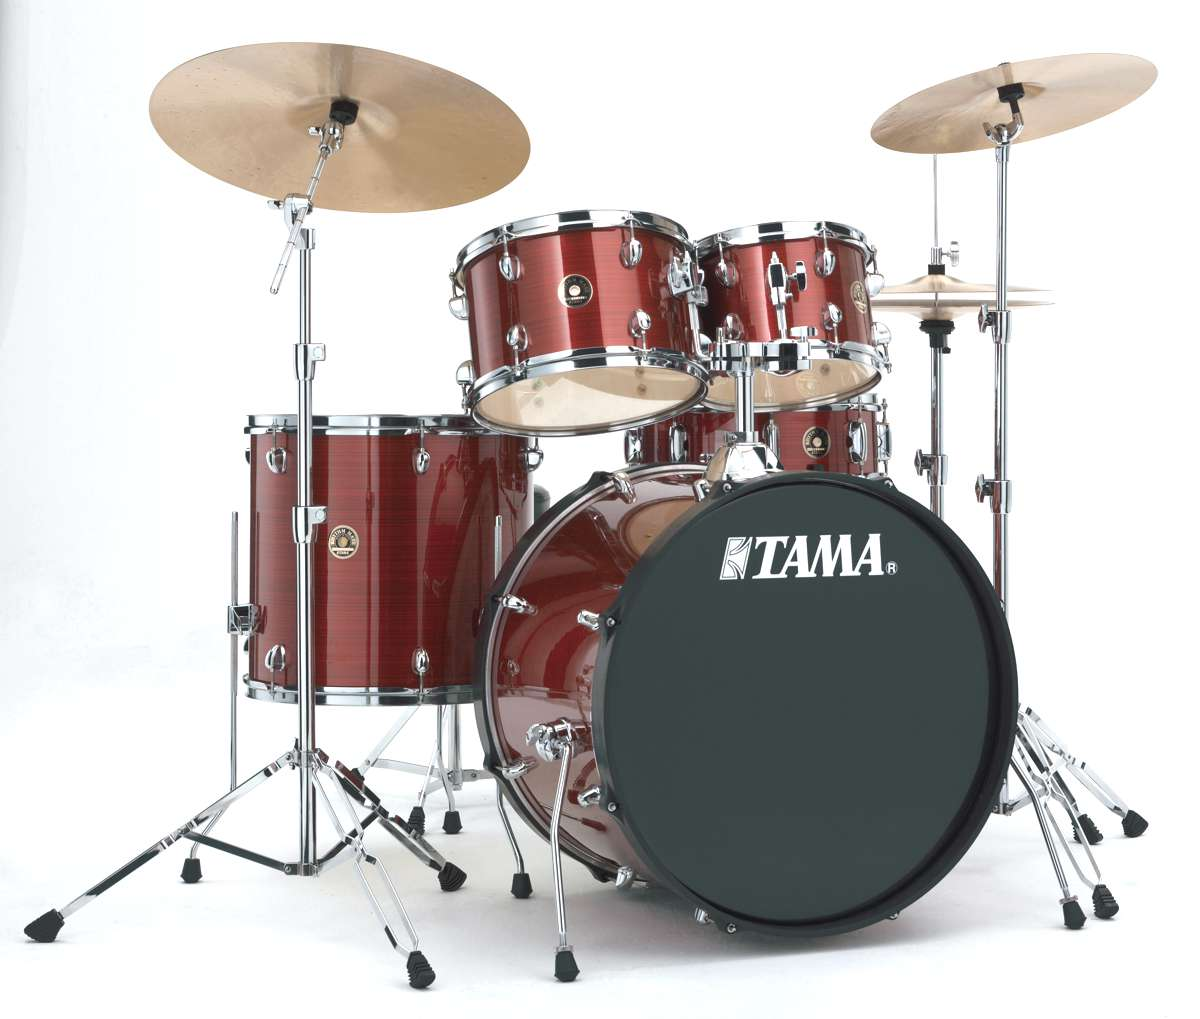 Tama Rm52kh6c-rds - Rhythm Mate 5 Futs 22/10/12/16 Avec Hardware Et Cymbales Red...